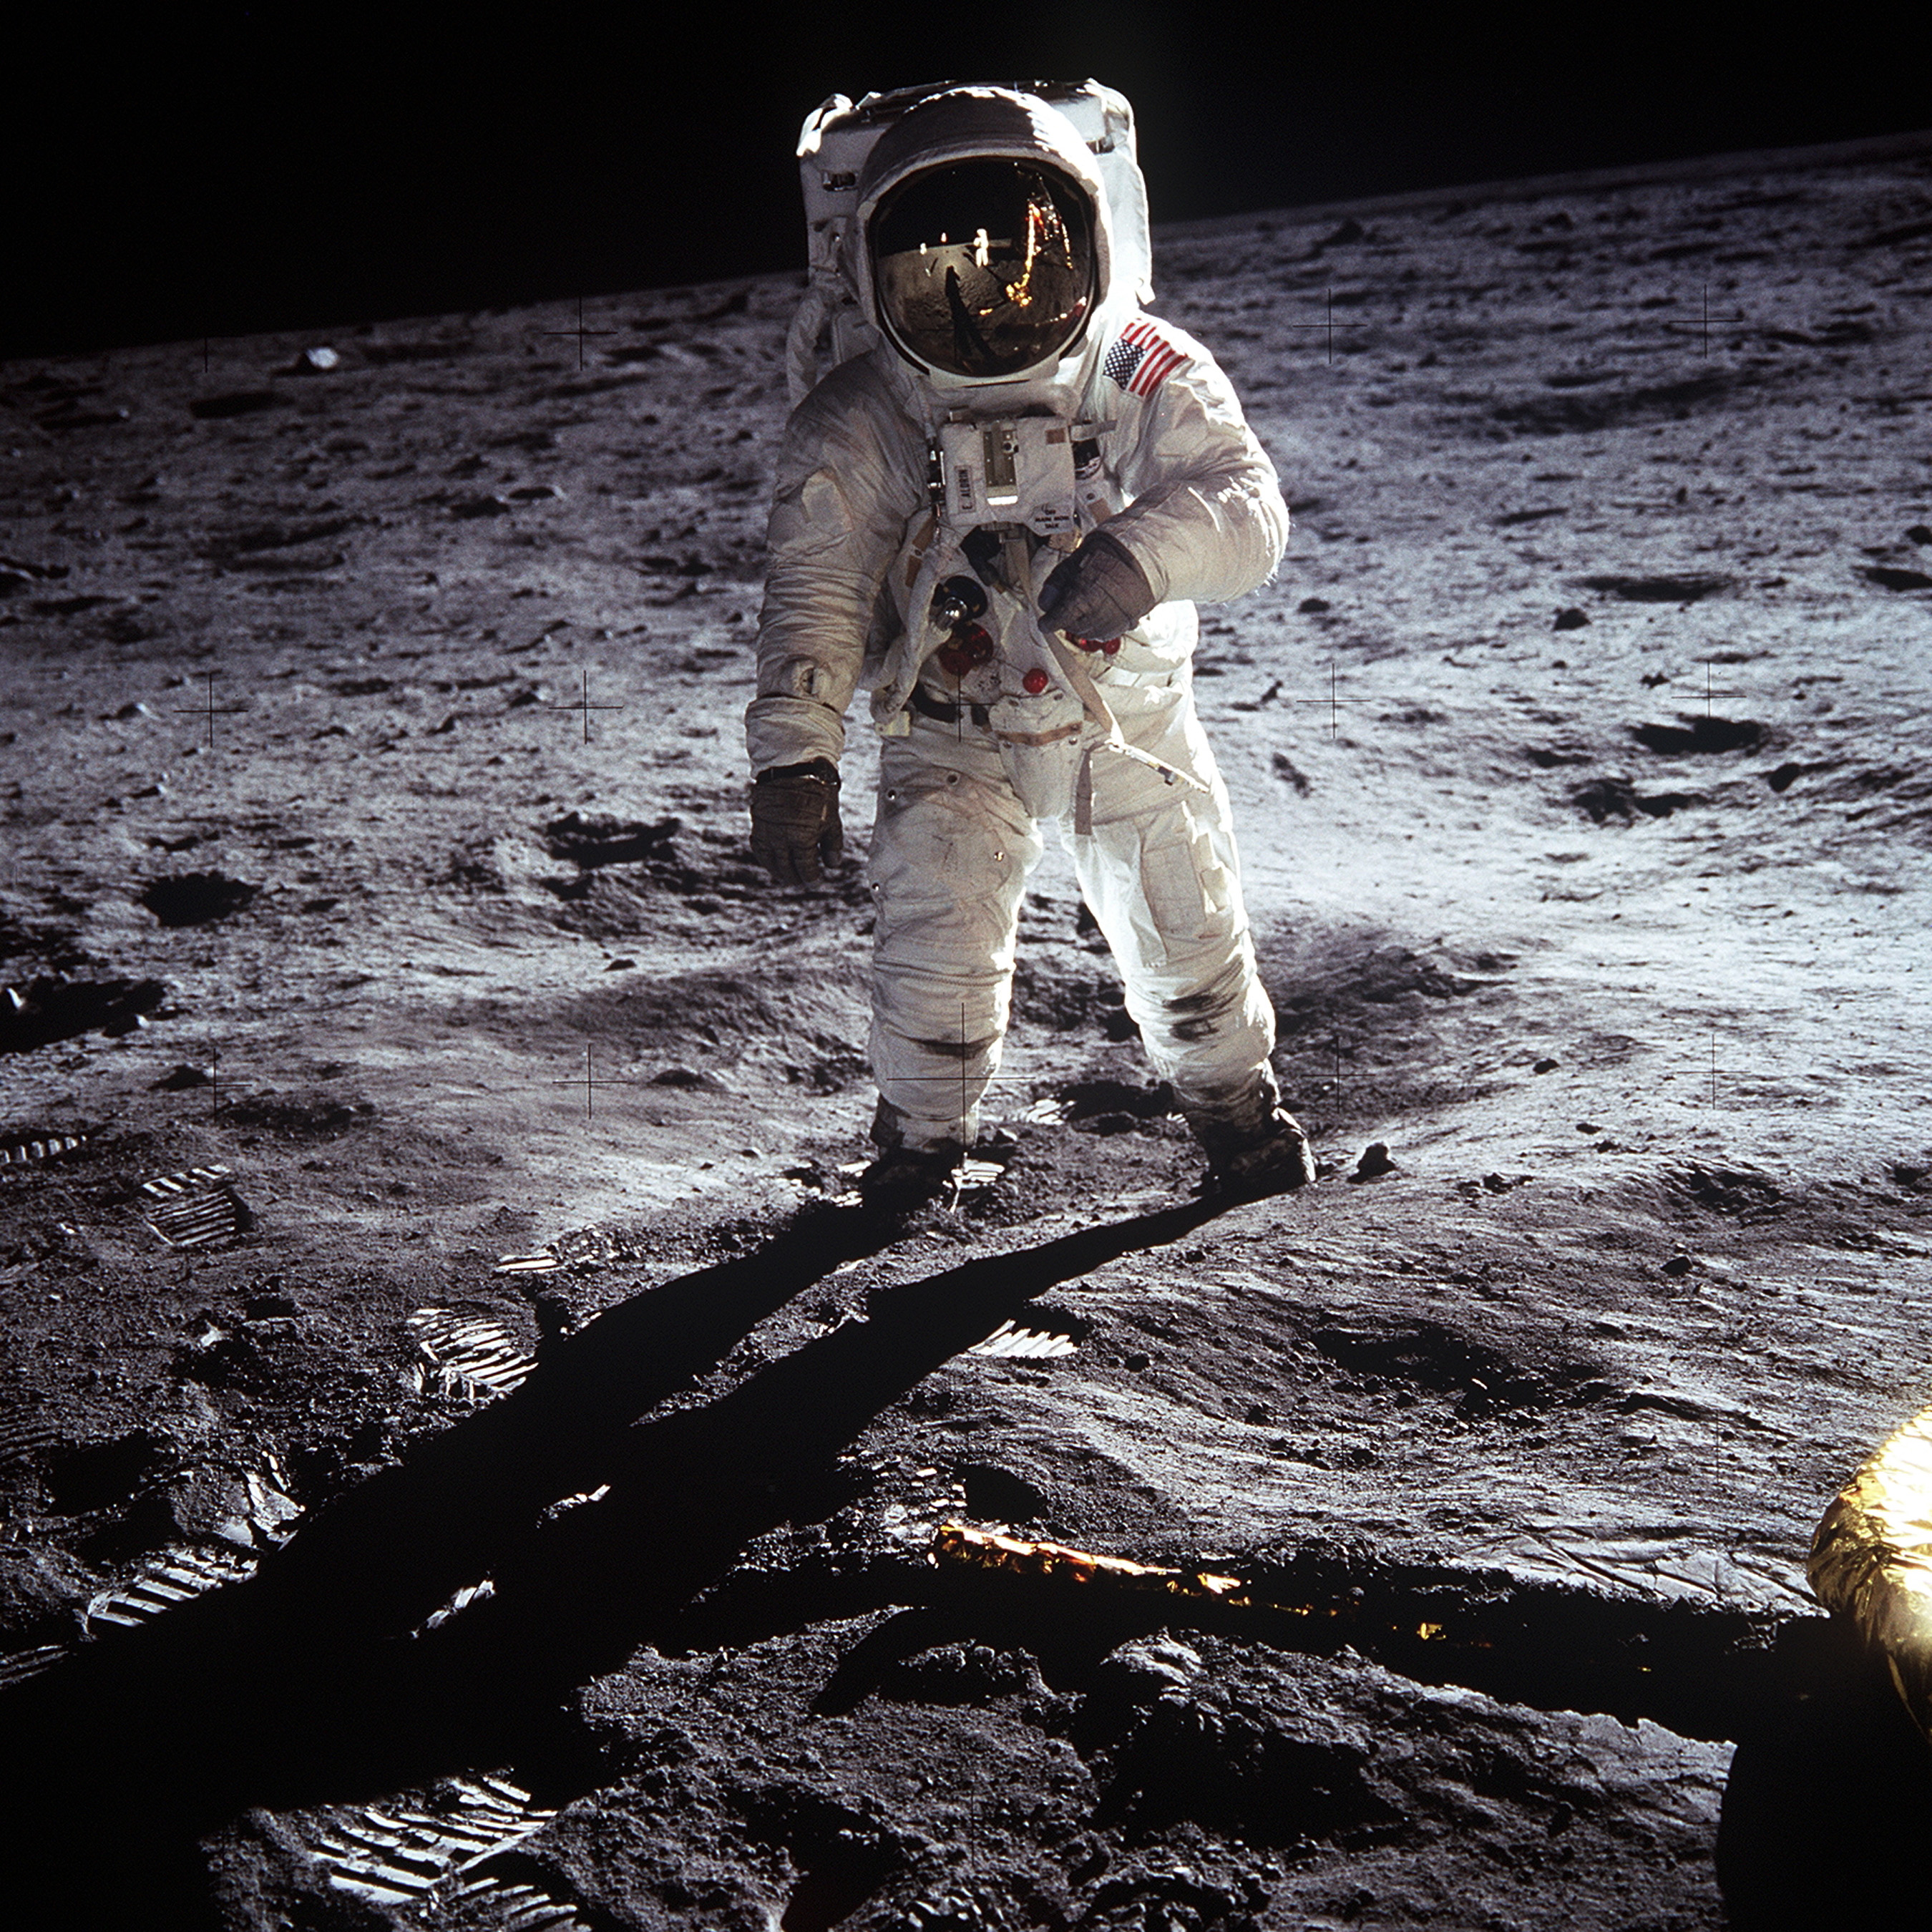 Buzz Aldrin on the Moon (Apollo 11)